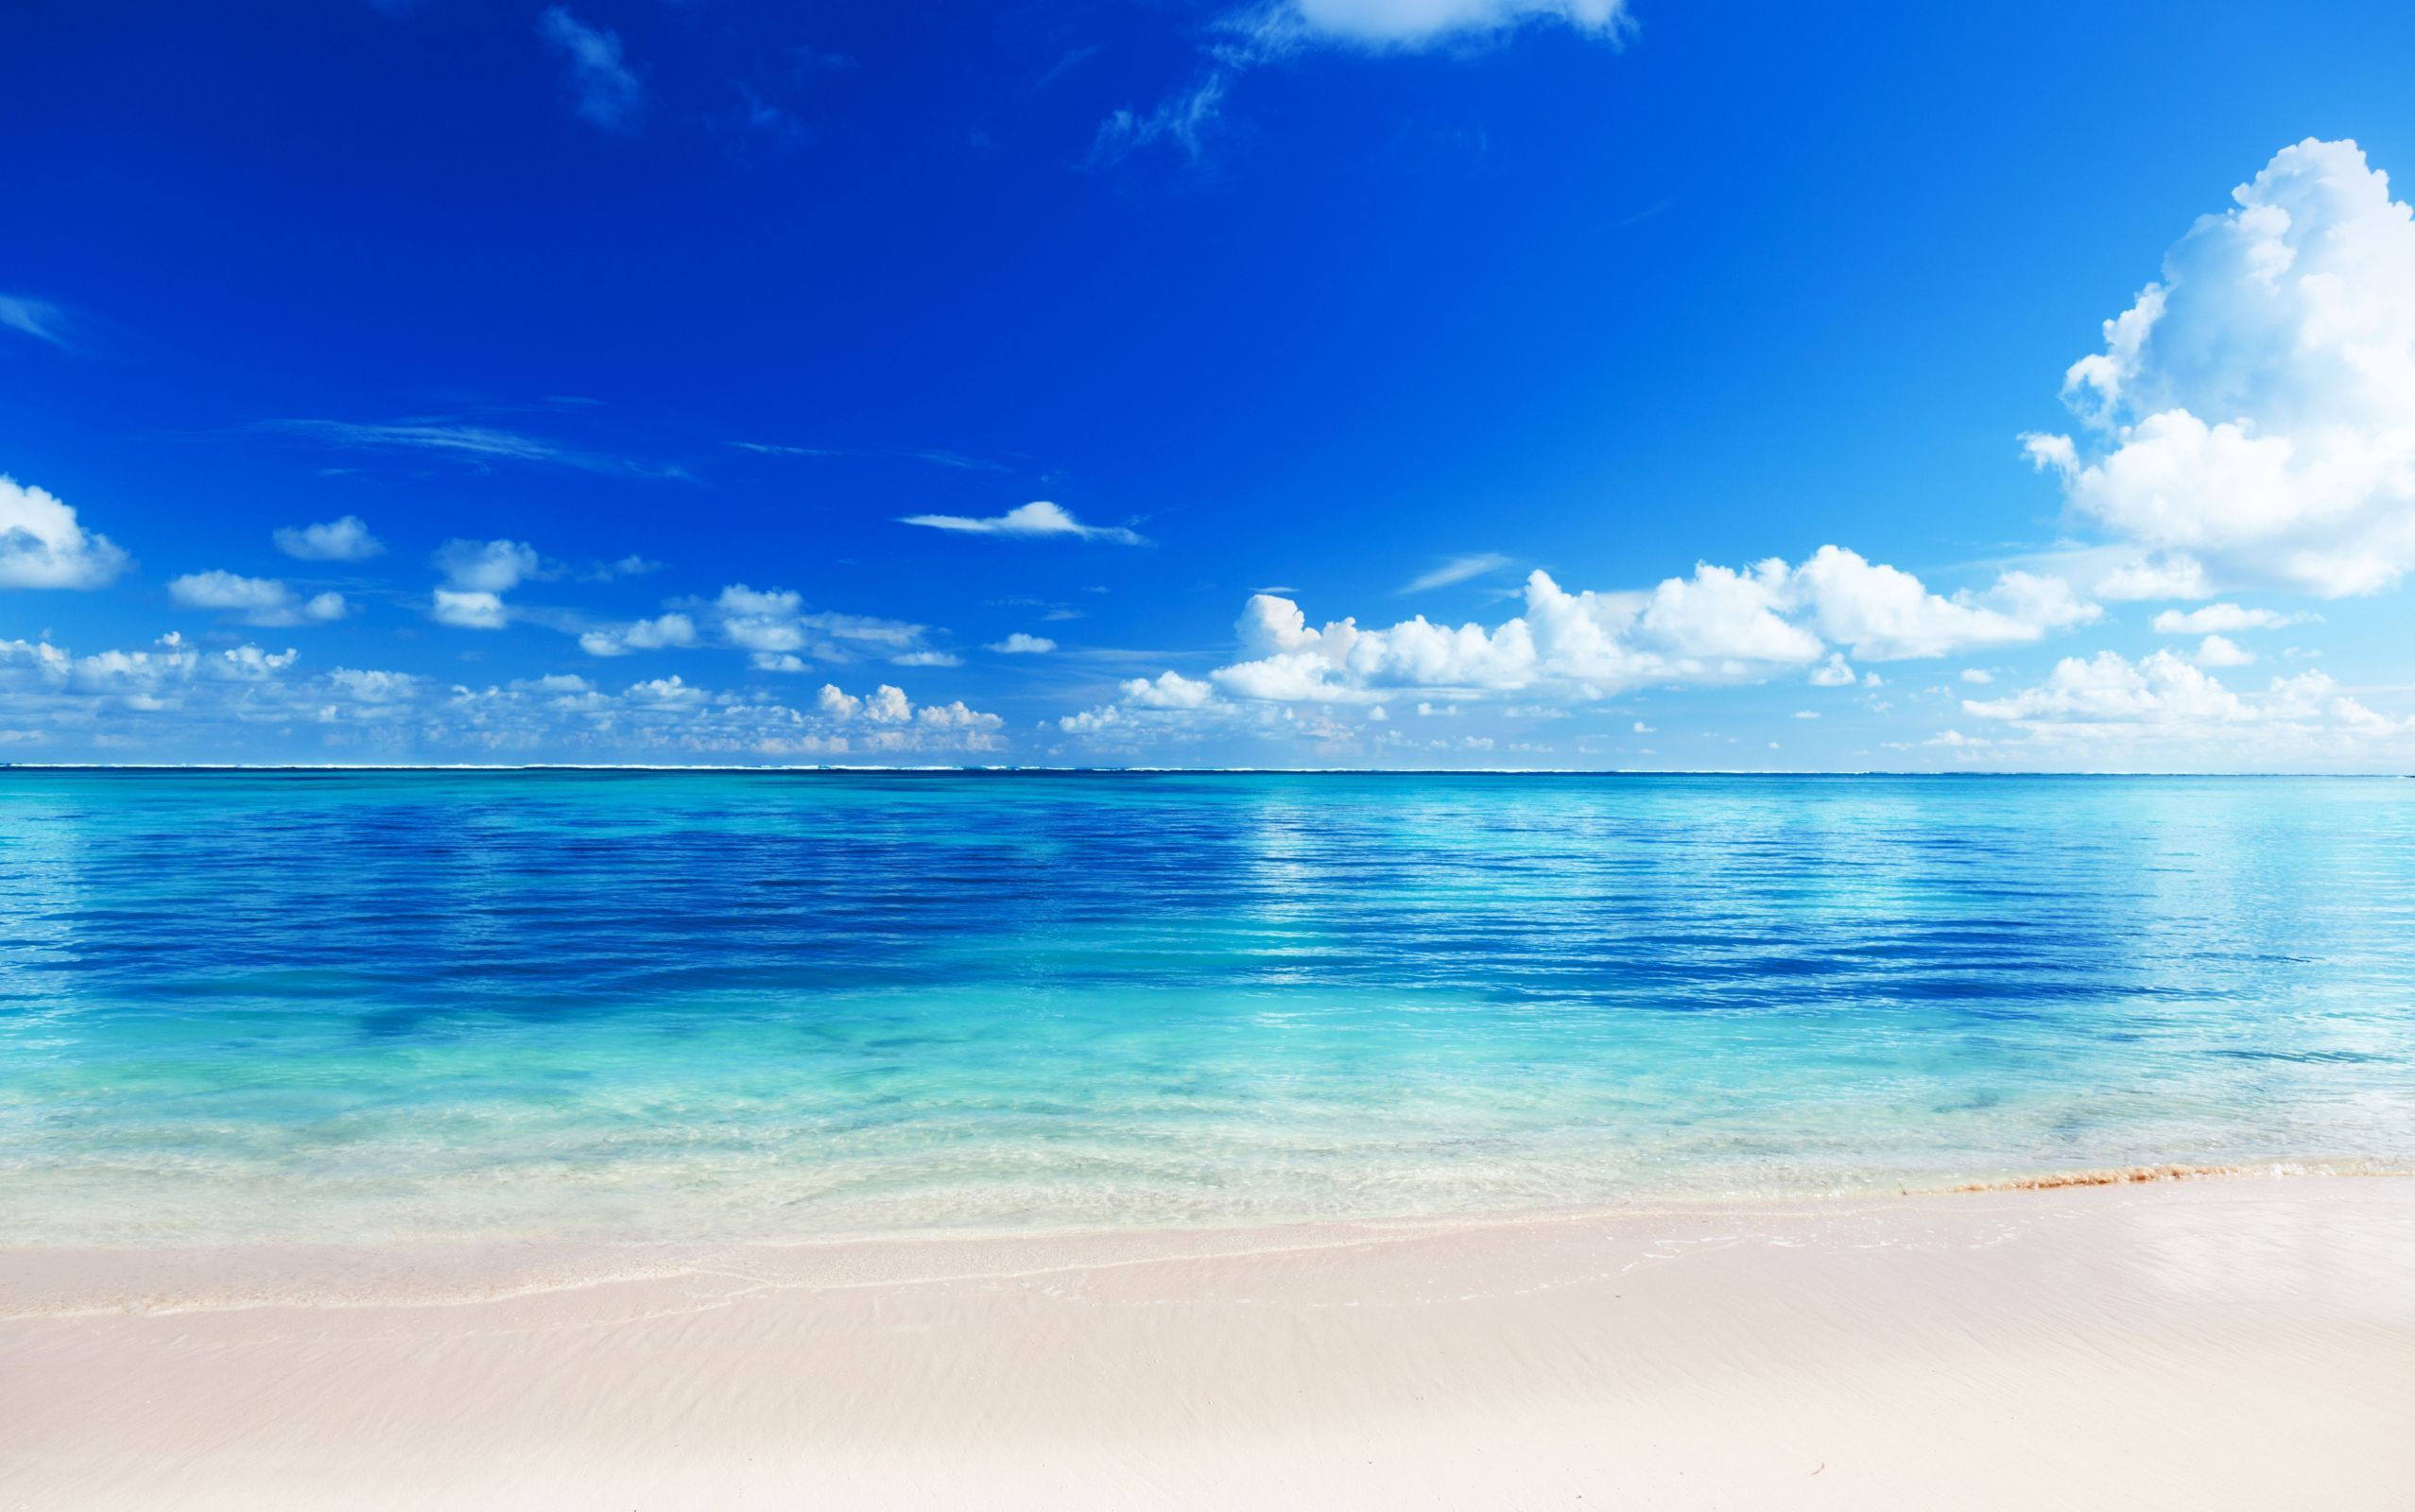 beach wallpapers Desktop Backgrounds for HD Wallpaper wall 2555x1600